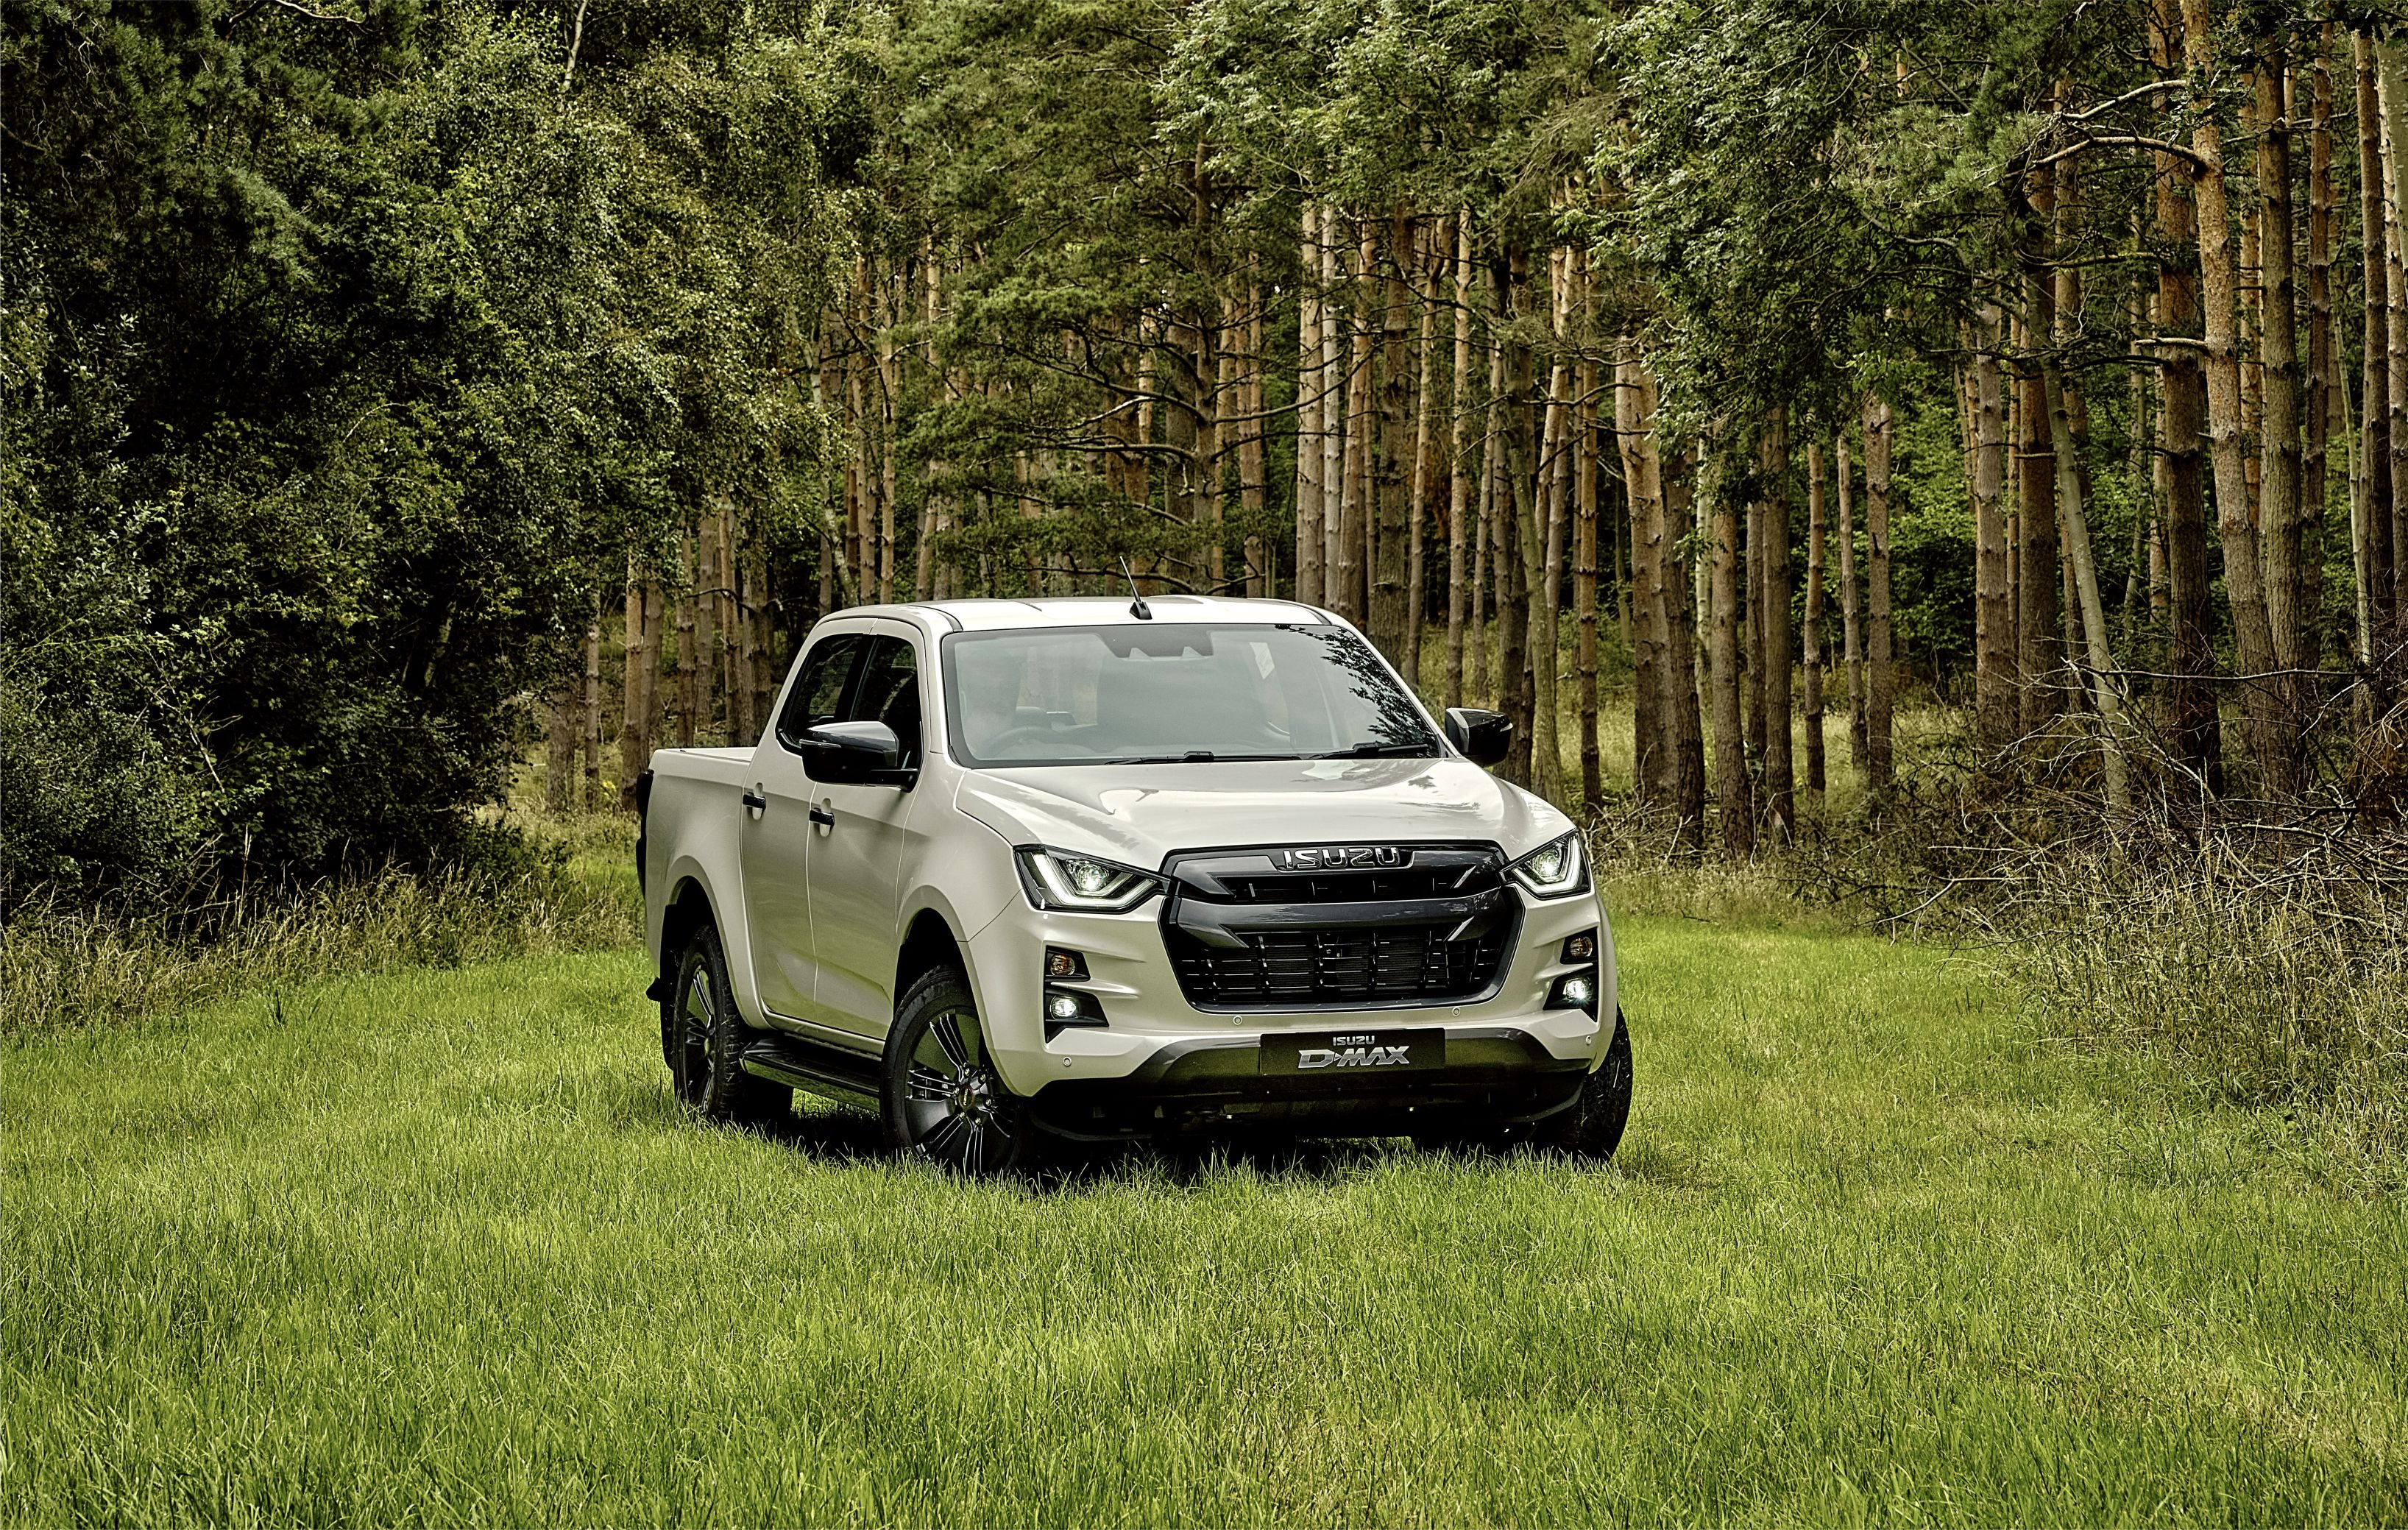 /Isuzu New Car Offers - Roger Young